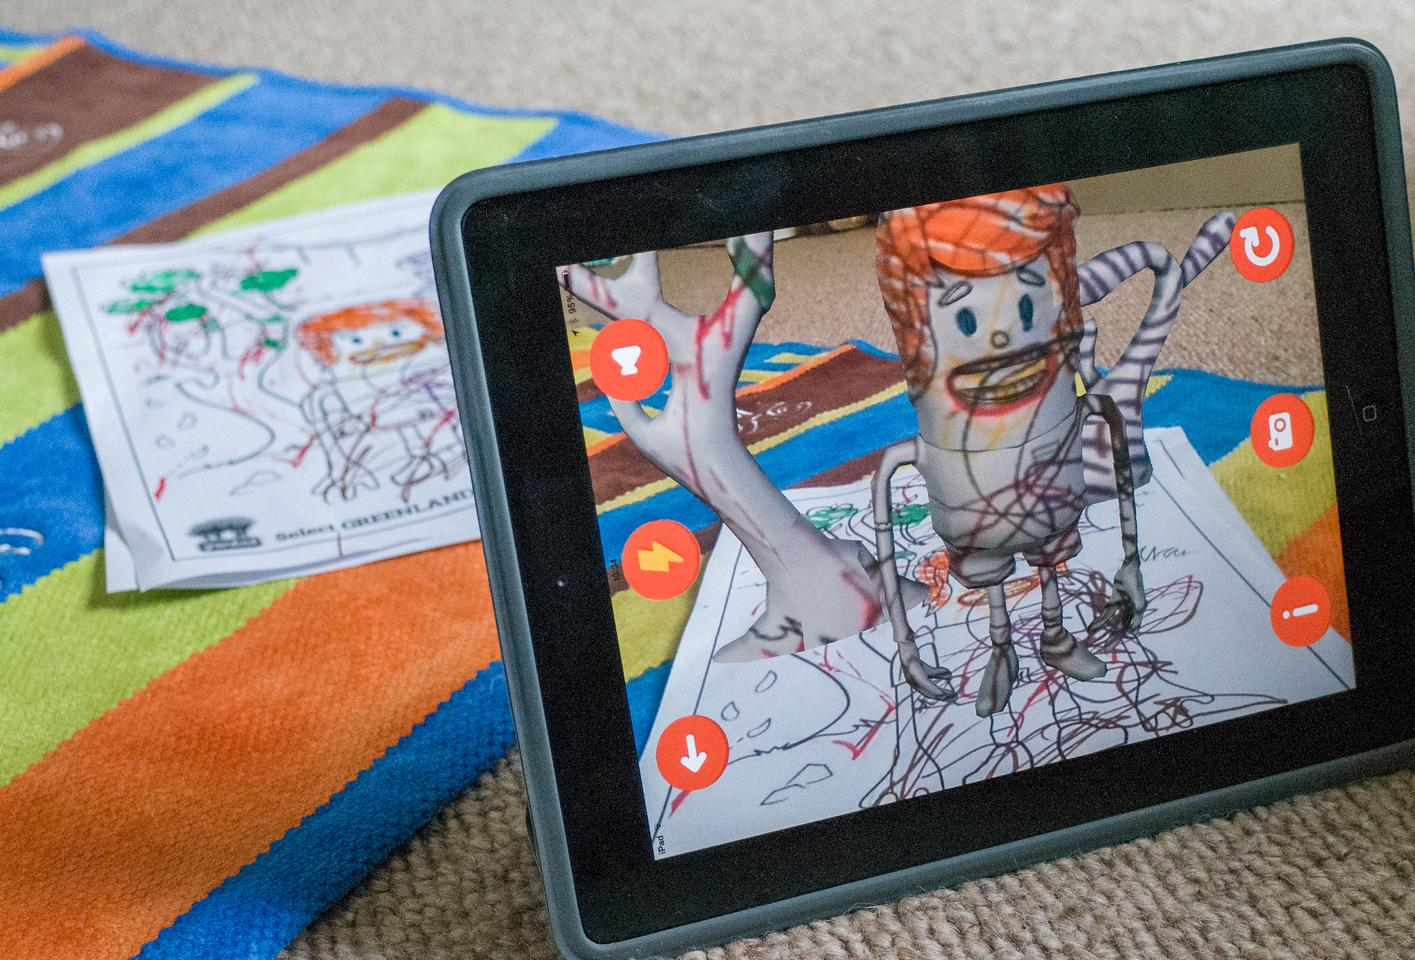 Chromville brings real-world coloring to 3D life with augmented reality